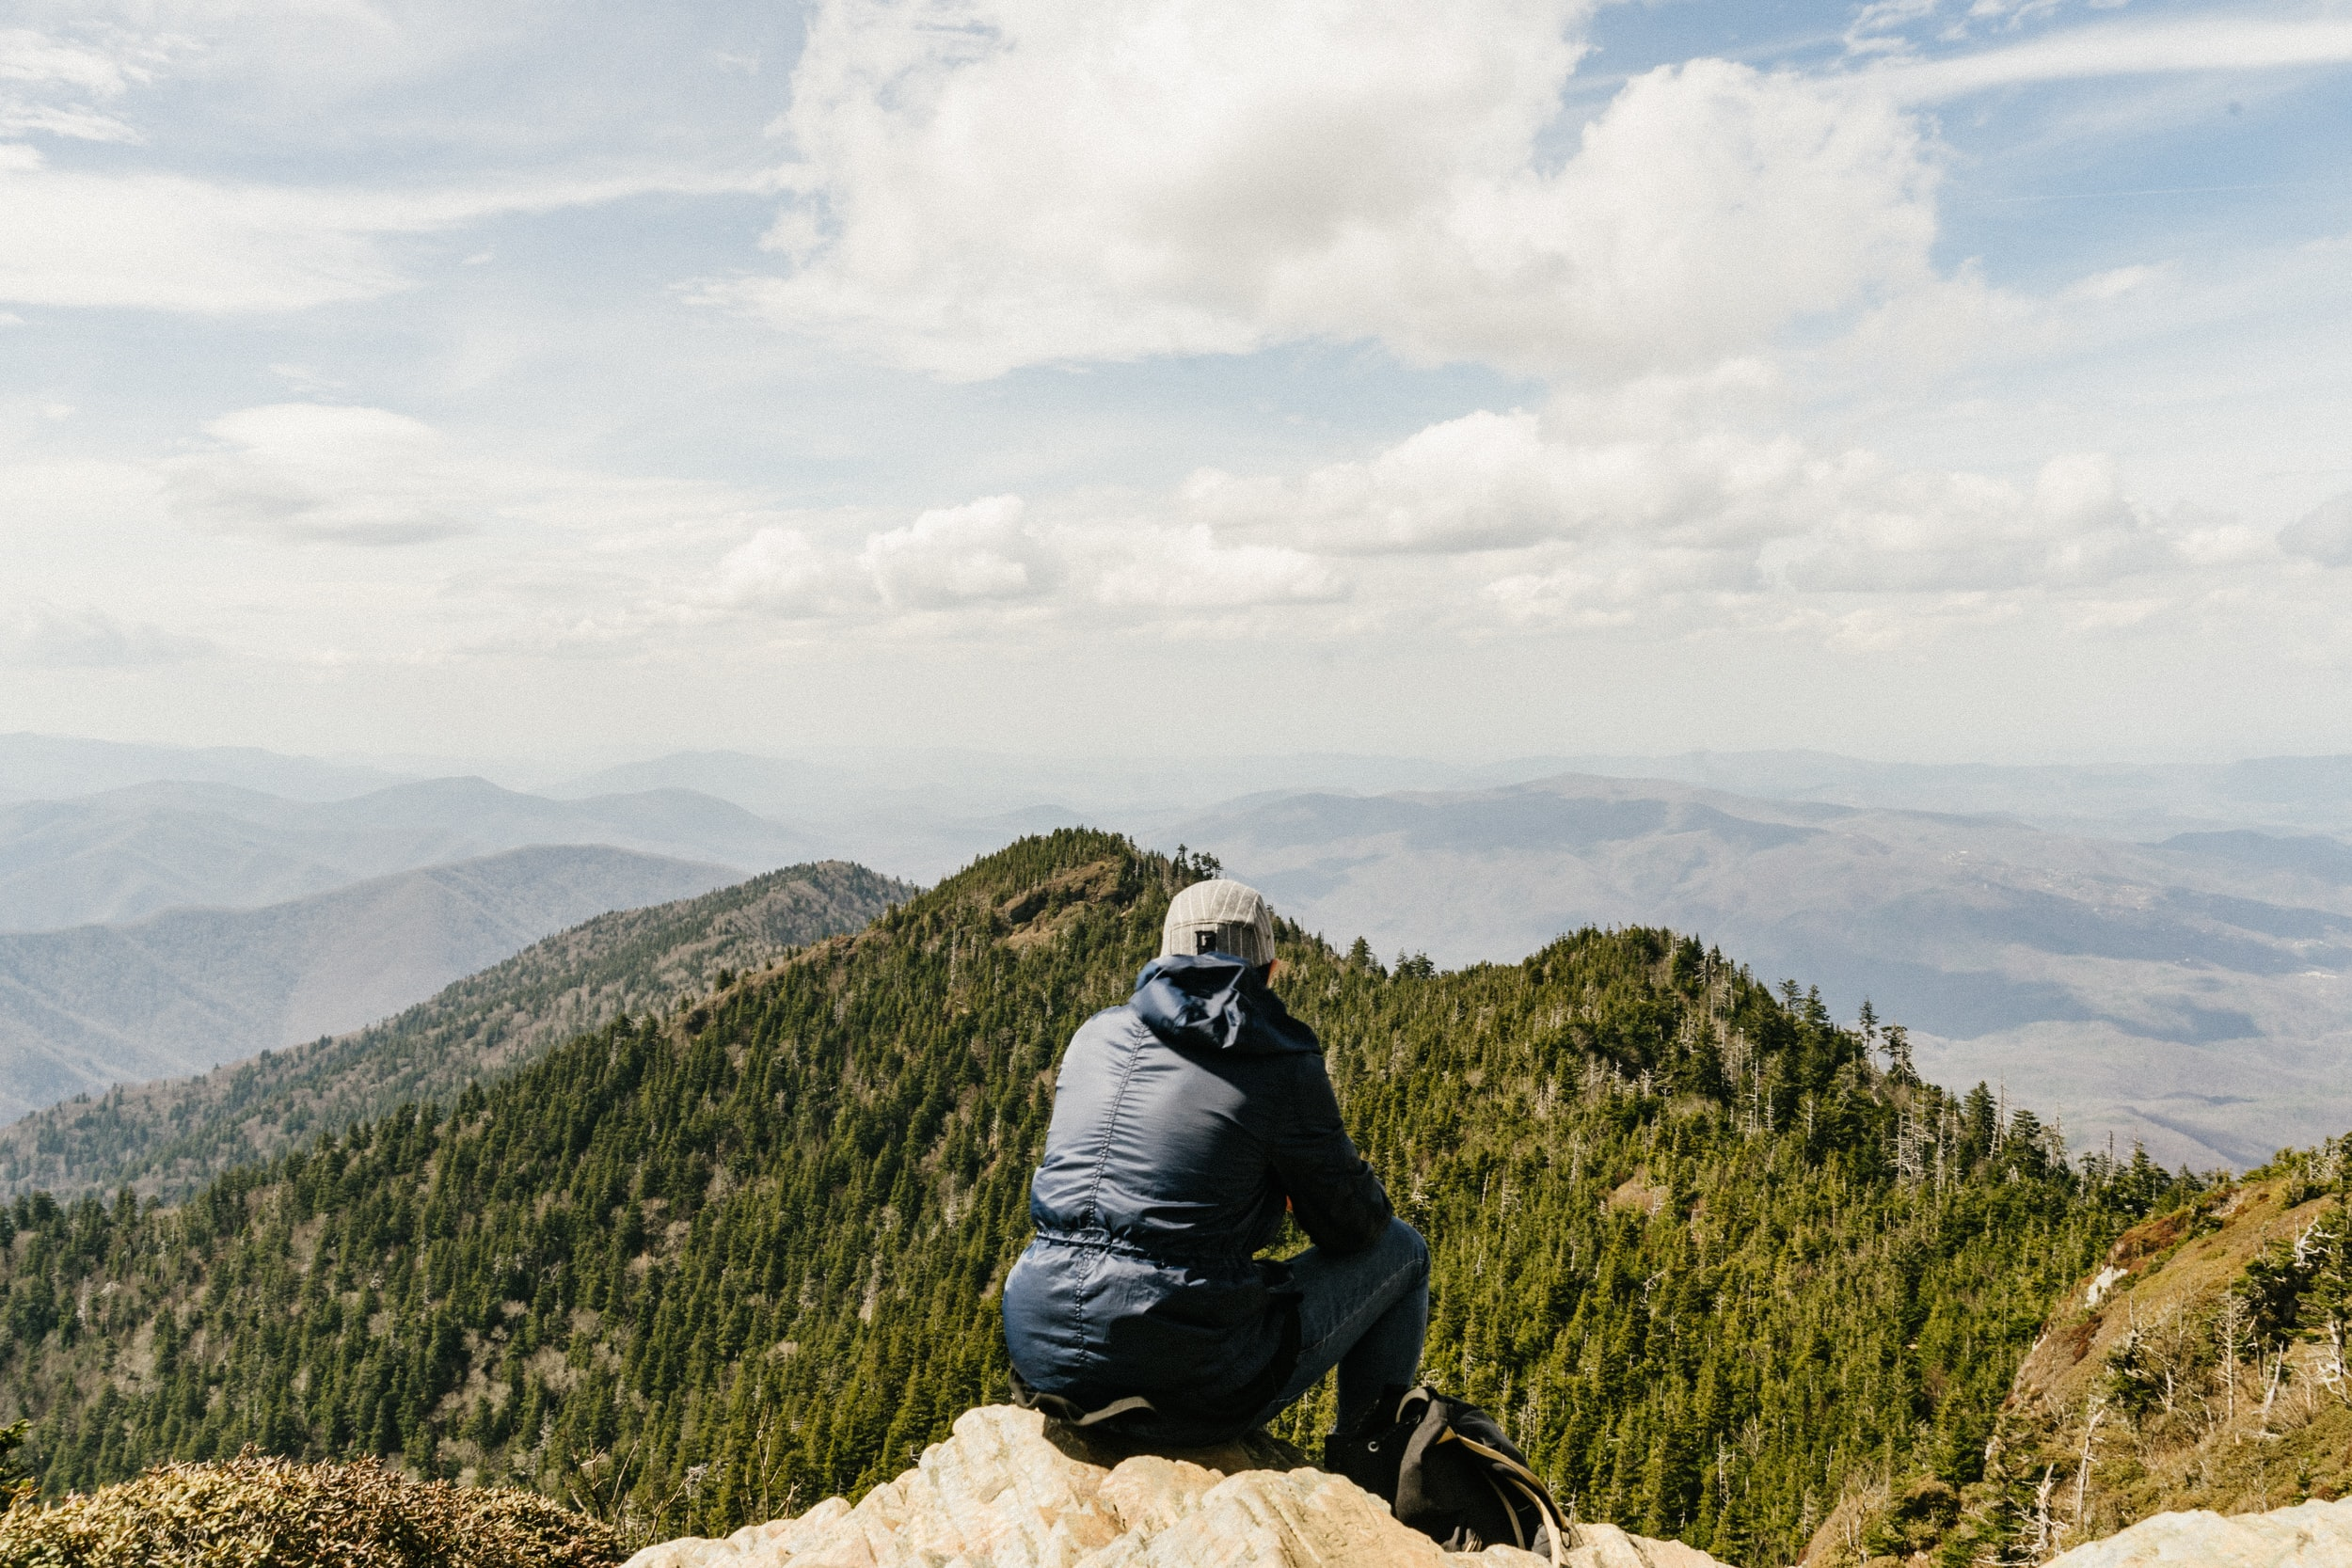 man sitting on mountain in front of trees under cloudy sky